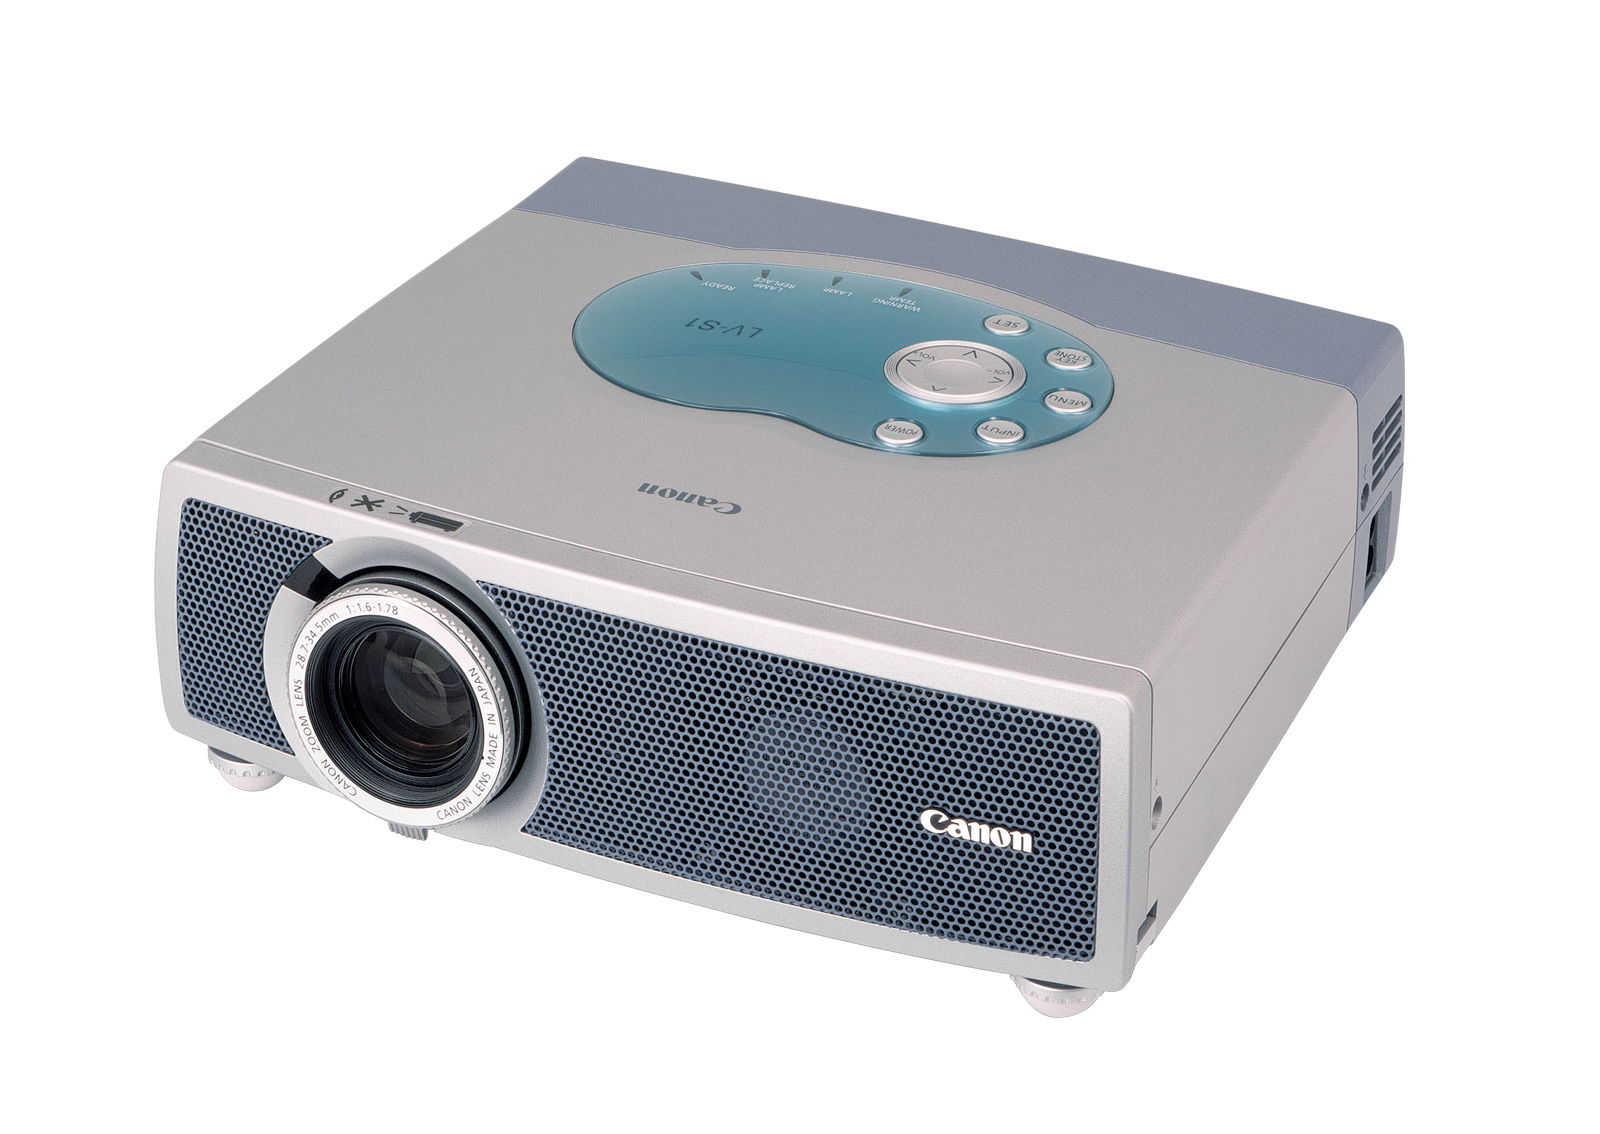 Canon Lv S2 Projector Lamp